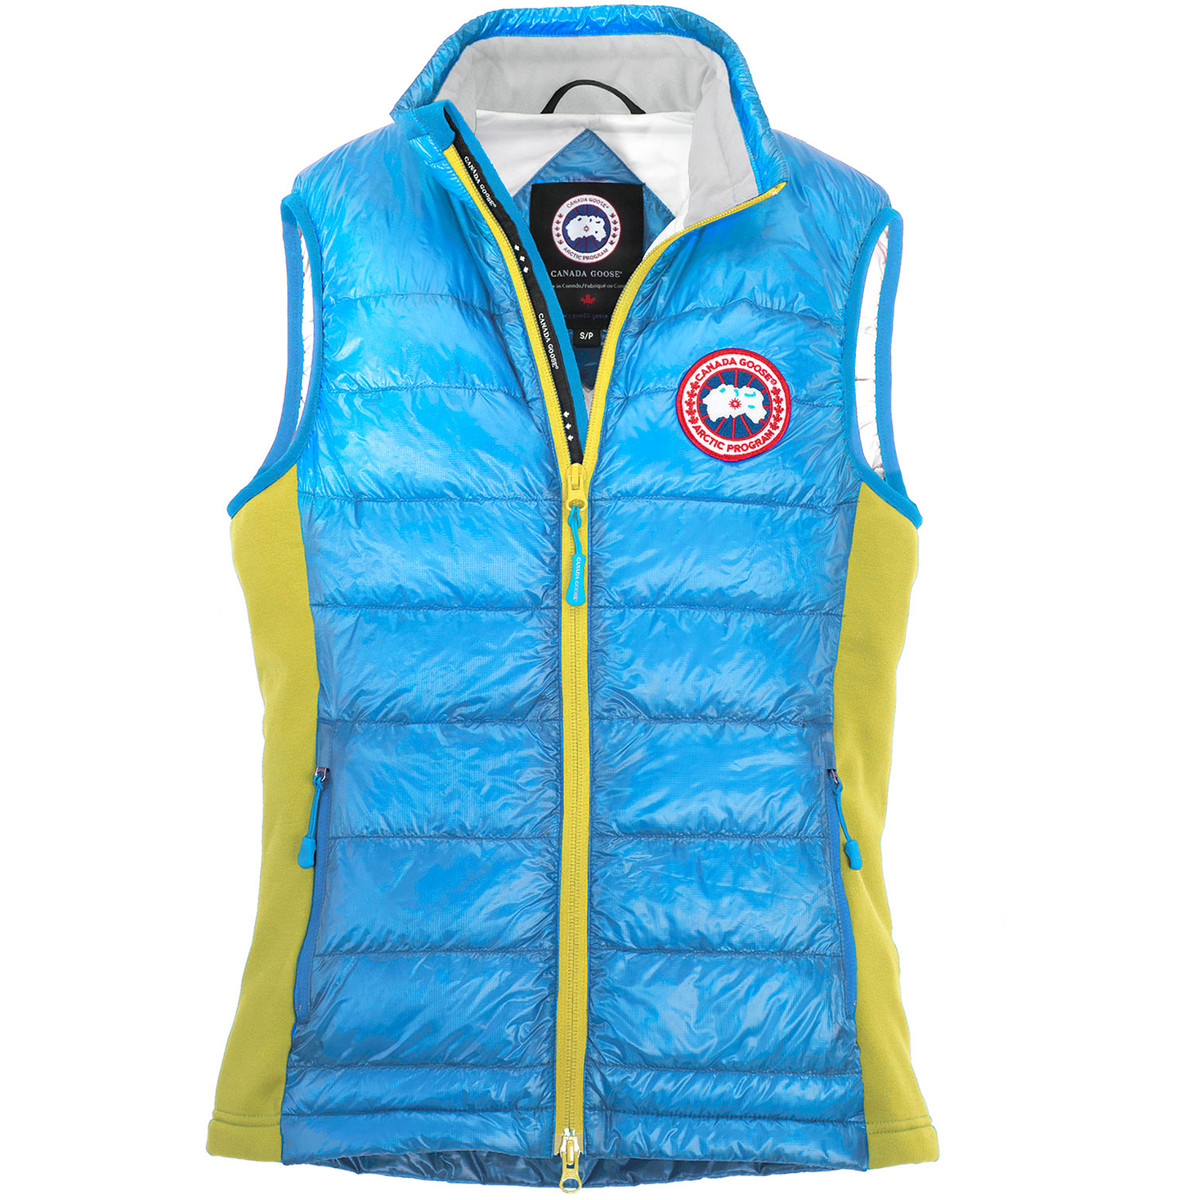 photo of a Canada Goose down insulated vest